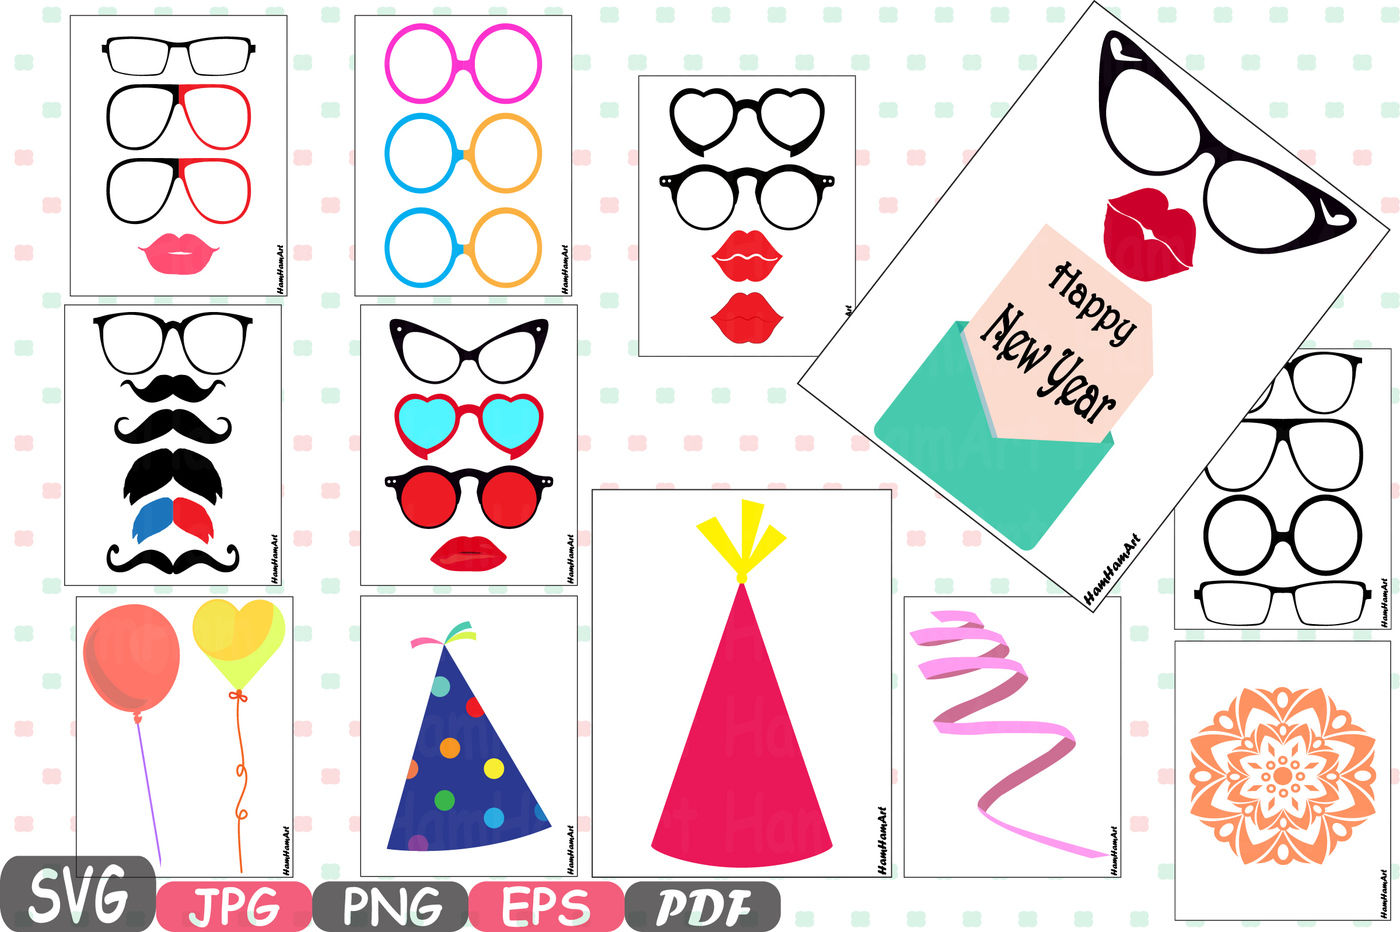 Party Photo Booth Prop Emoji Prop Silhouette Happy New Year Cameo